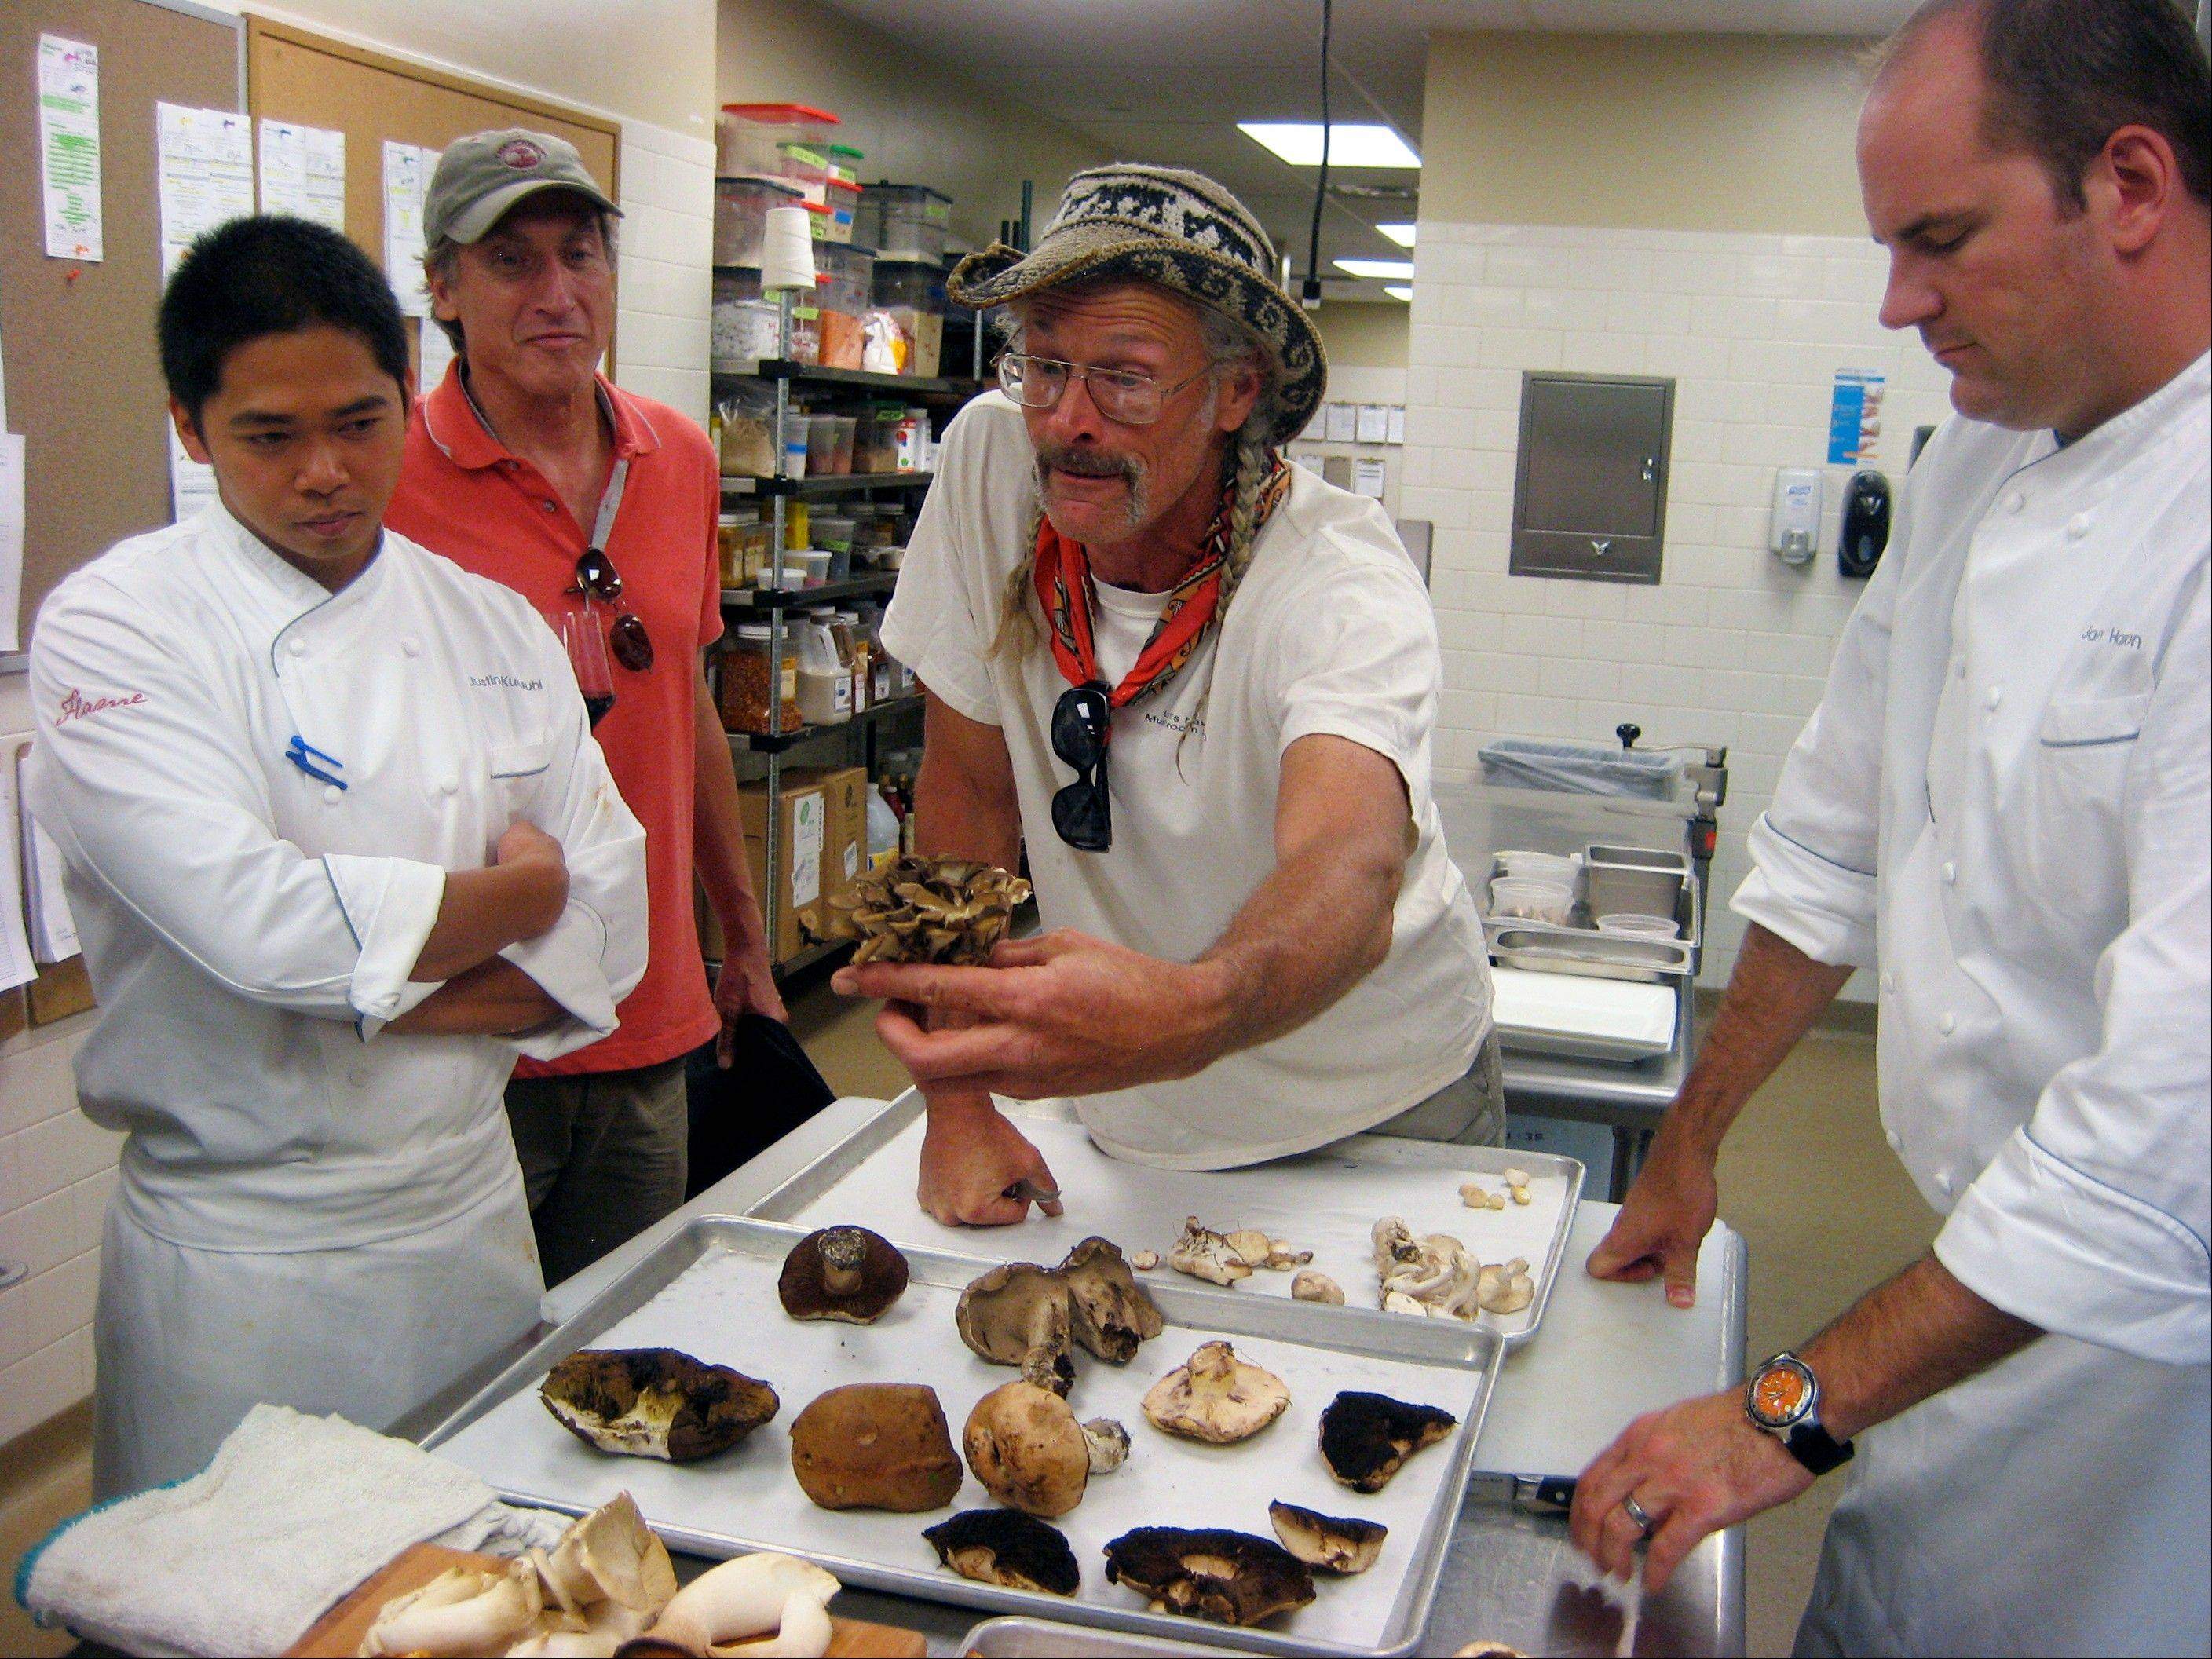 This Aug. 4, 2012 photo shows Four Seasons Resort Vail Executive Chef Jason Harrison, left, looking on as mushroom guide Larry Evans, center, shows off specimens collected during a foraging trip organized by Four Seasons Resort Vail in Vail, Colo. For $200 a person, the Four Seasons Resort Vail is sending out guided expeditions in luxury SUVs to look for mushrooms. The Mushrooms & Mercedes program includes a lunchtime break with wine, cheese and prosciutto, and ends with a three-course mushroom-themed meal back at the hotel.